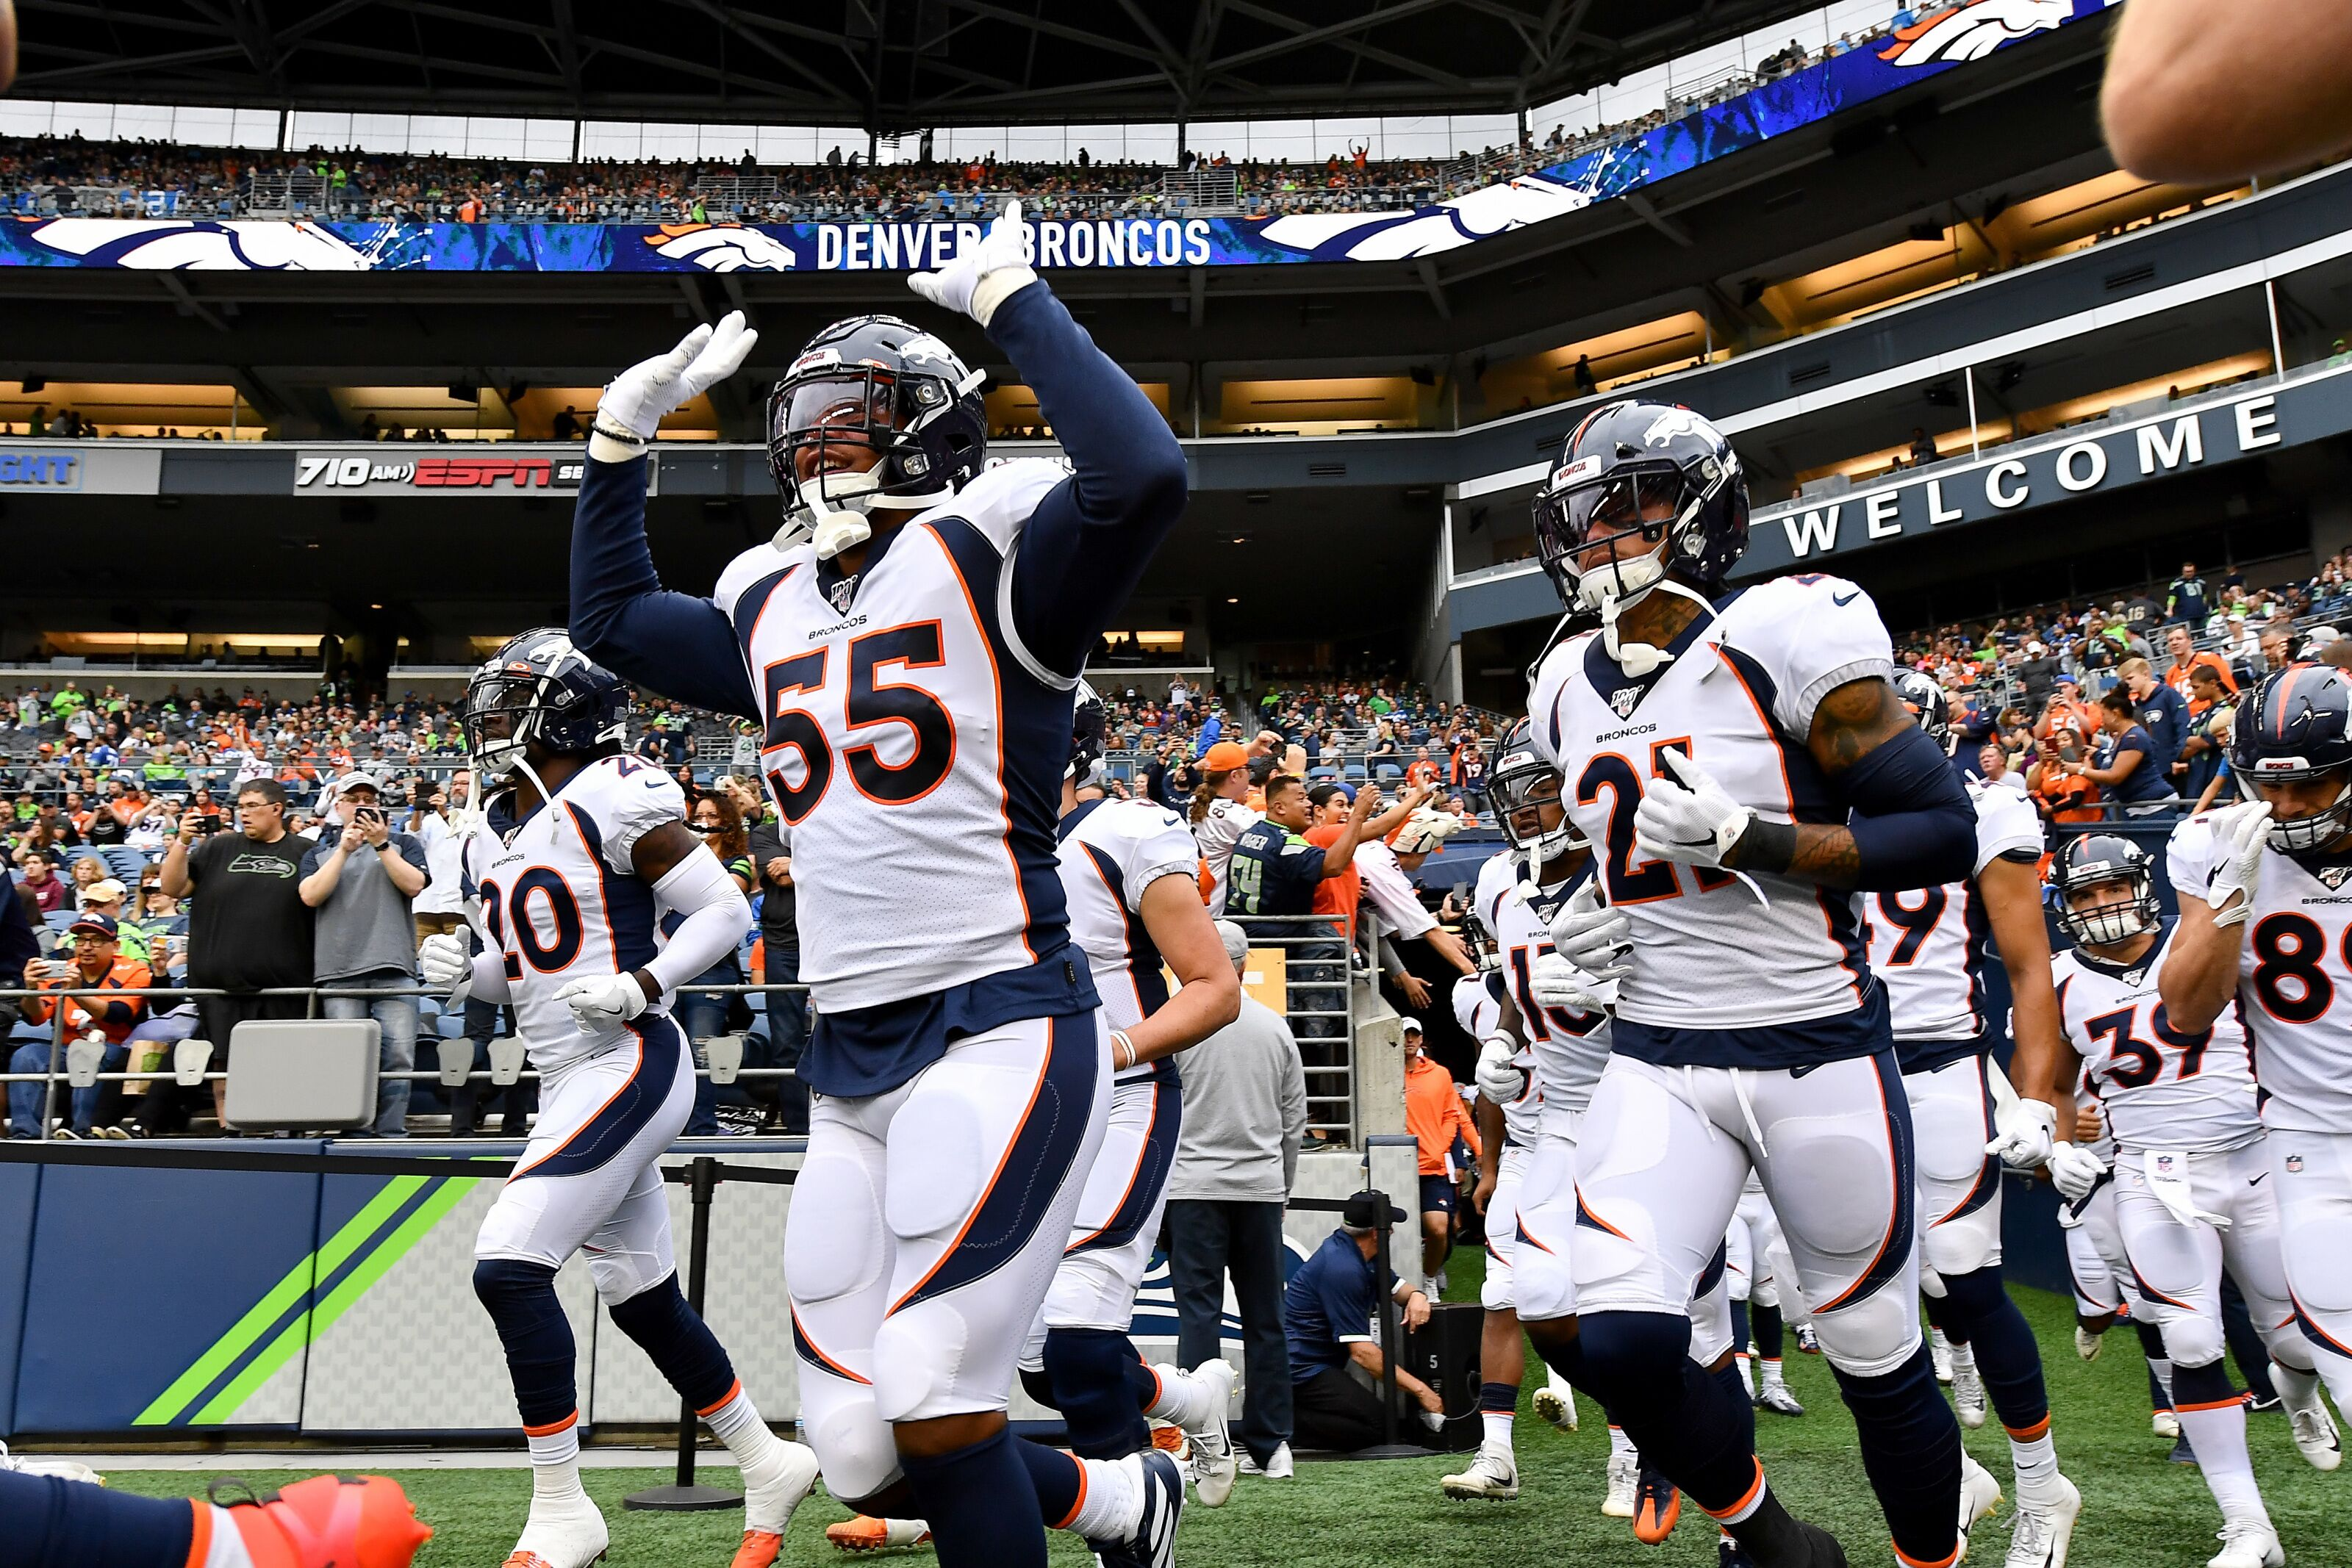 Denver Broncos: Defense wins the day in first 49ers practice